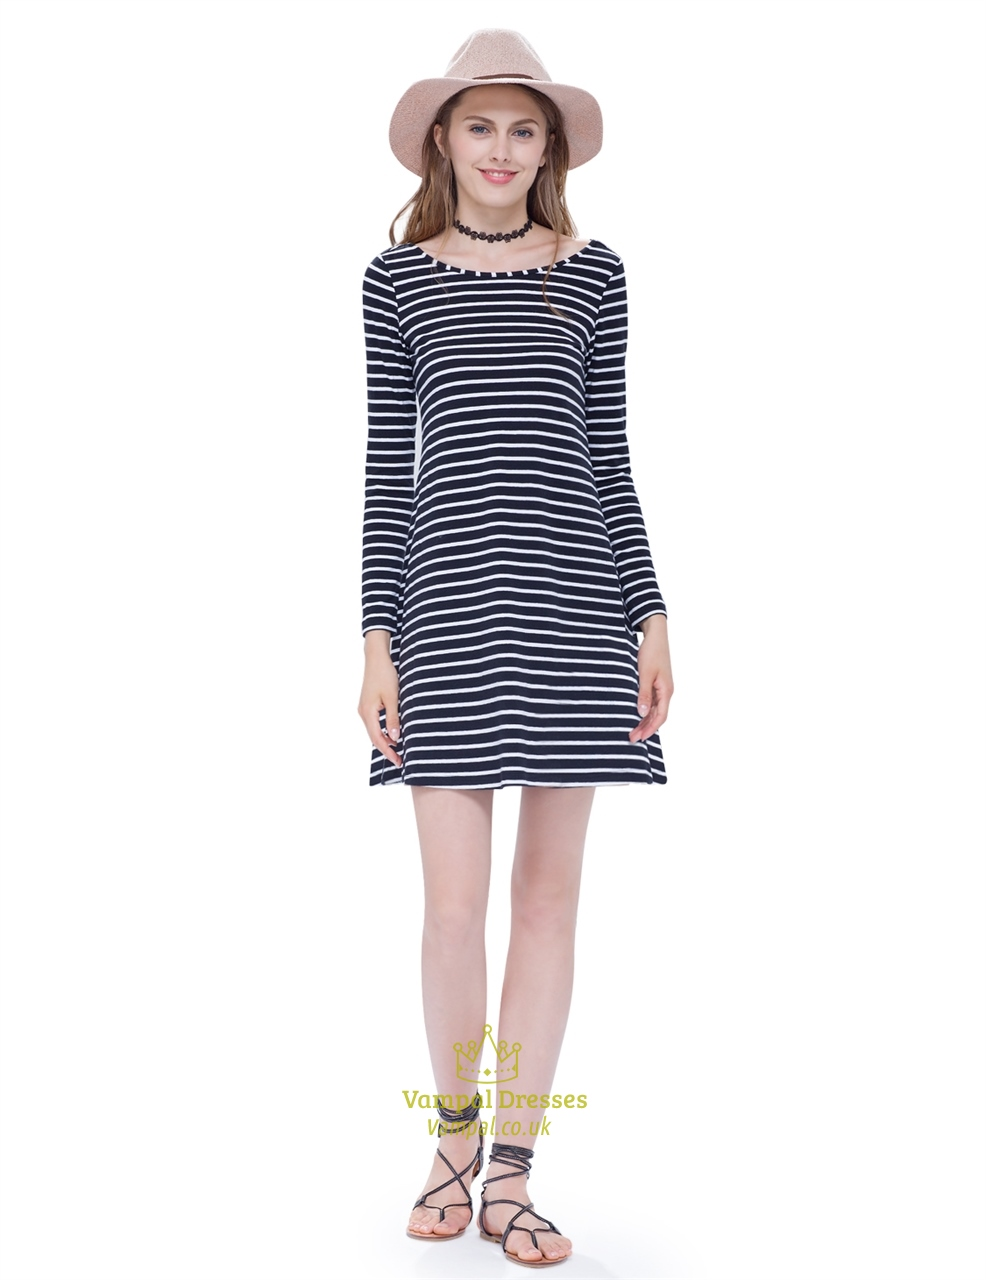 Classic Loose Black And White Striped T Shirt Dress With Long Sleeves | Vampal Dresses